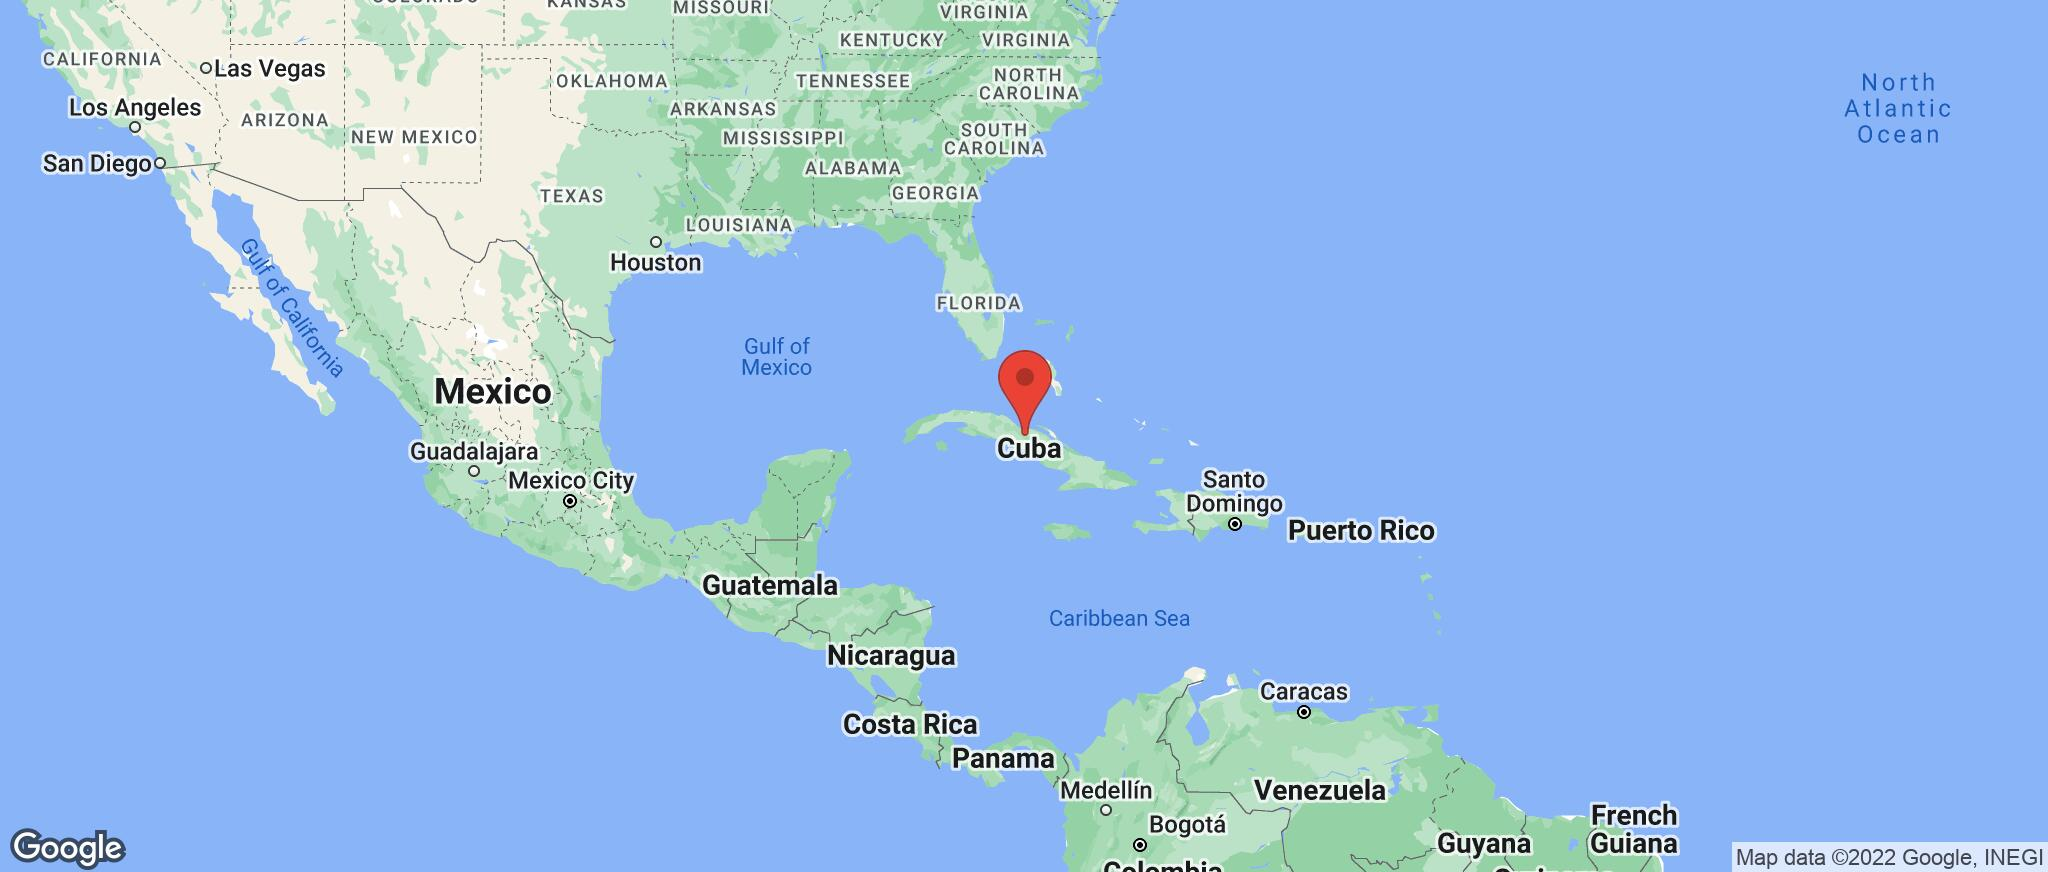 Map showing the location of Cuba